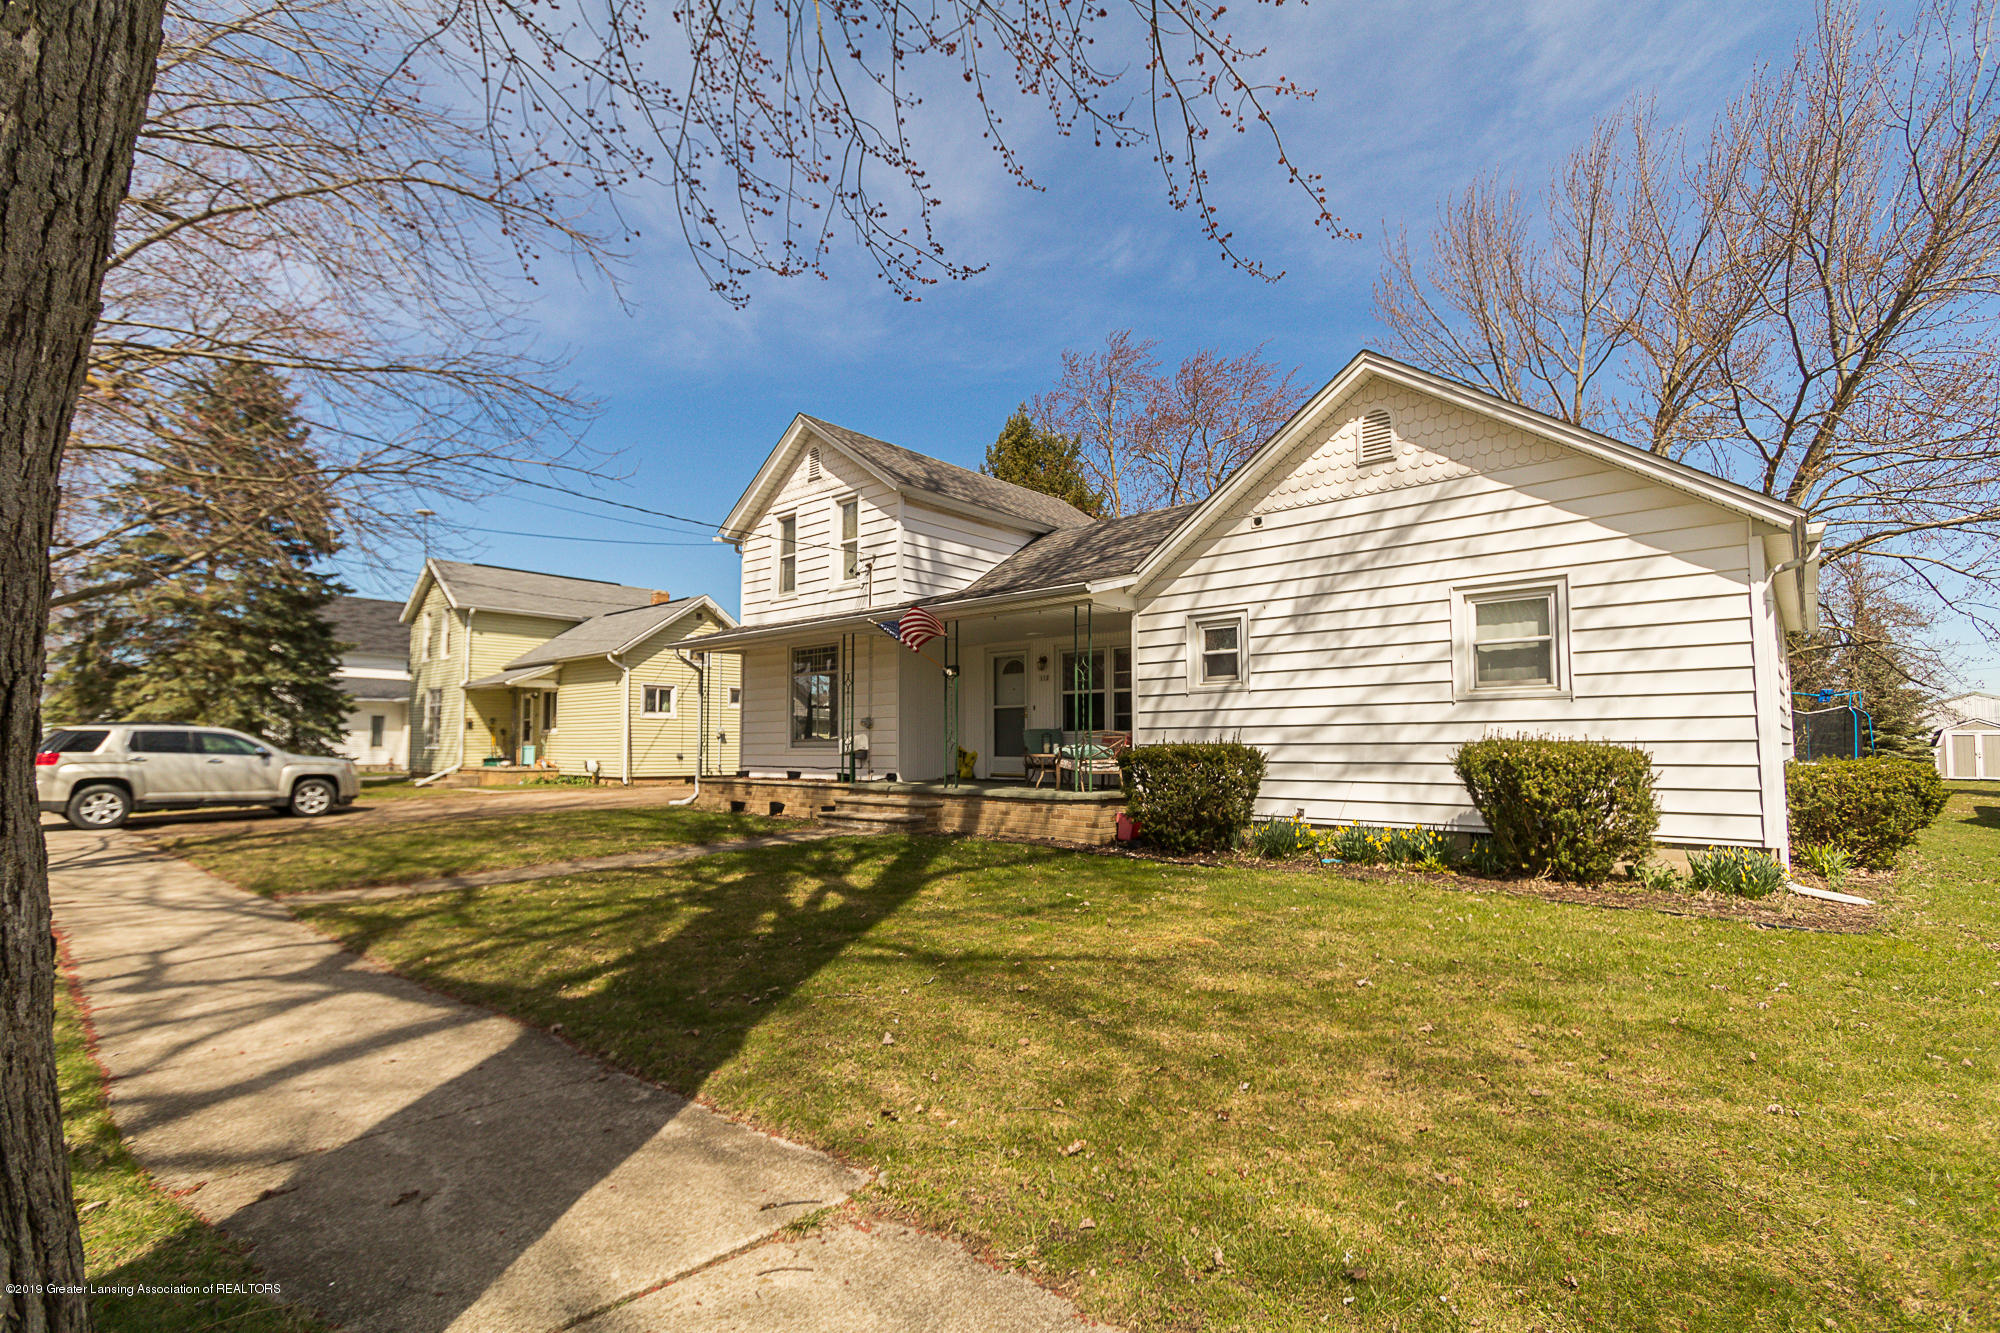 112 W Floral Ave - 22 - 22